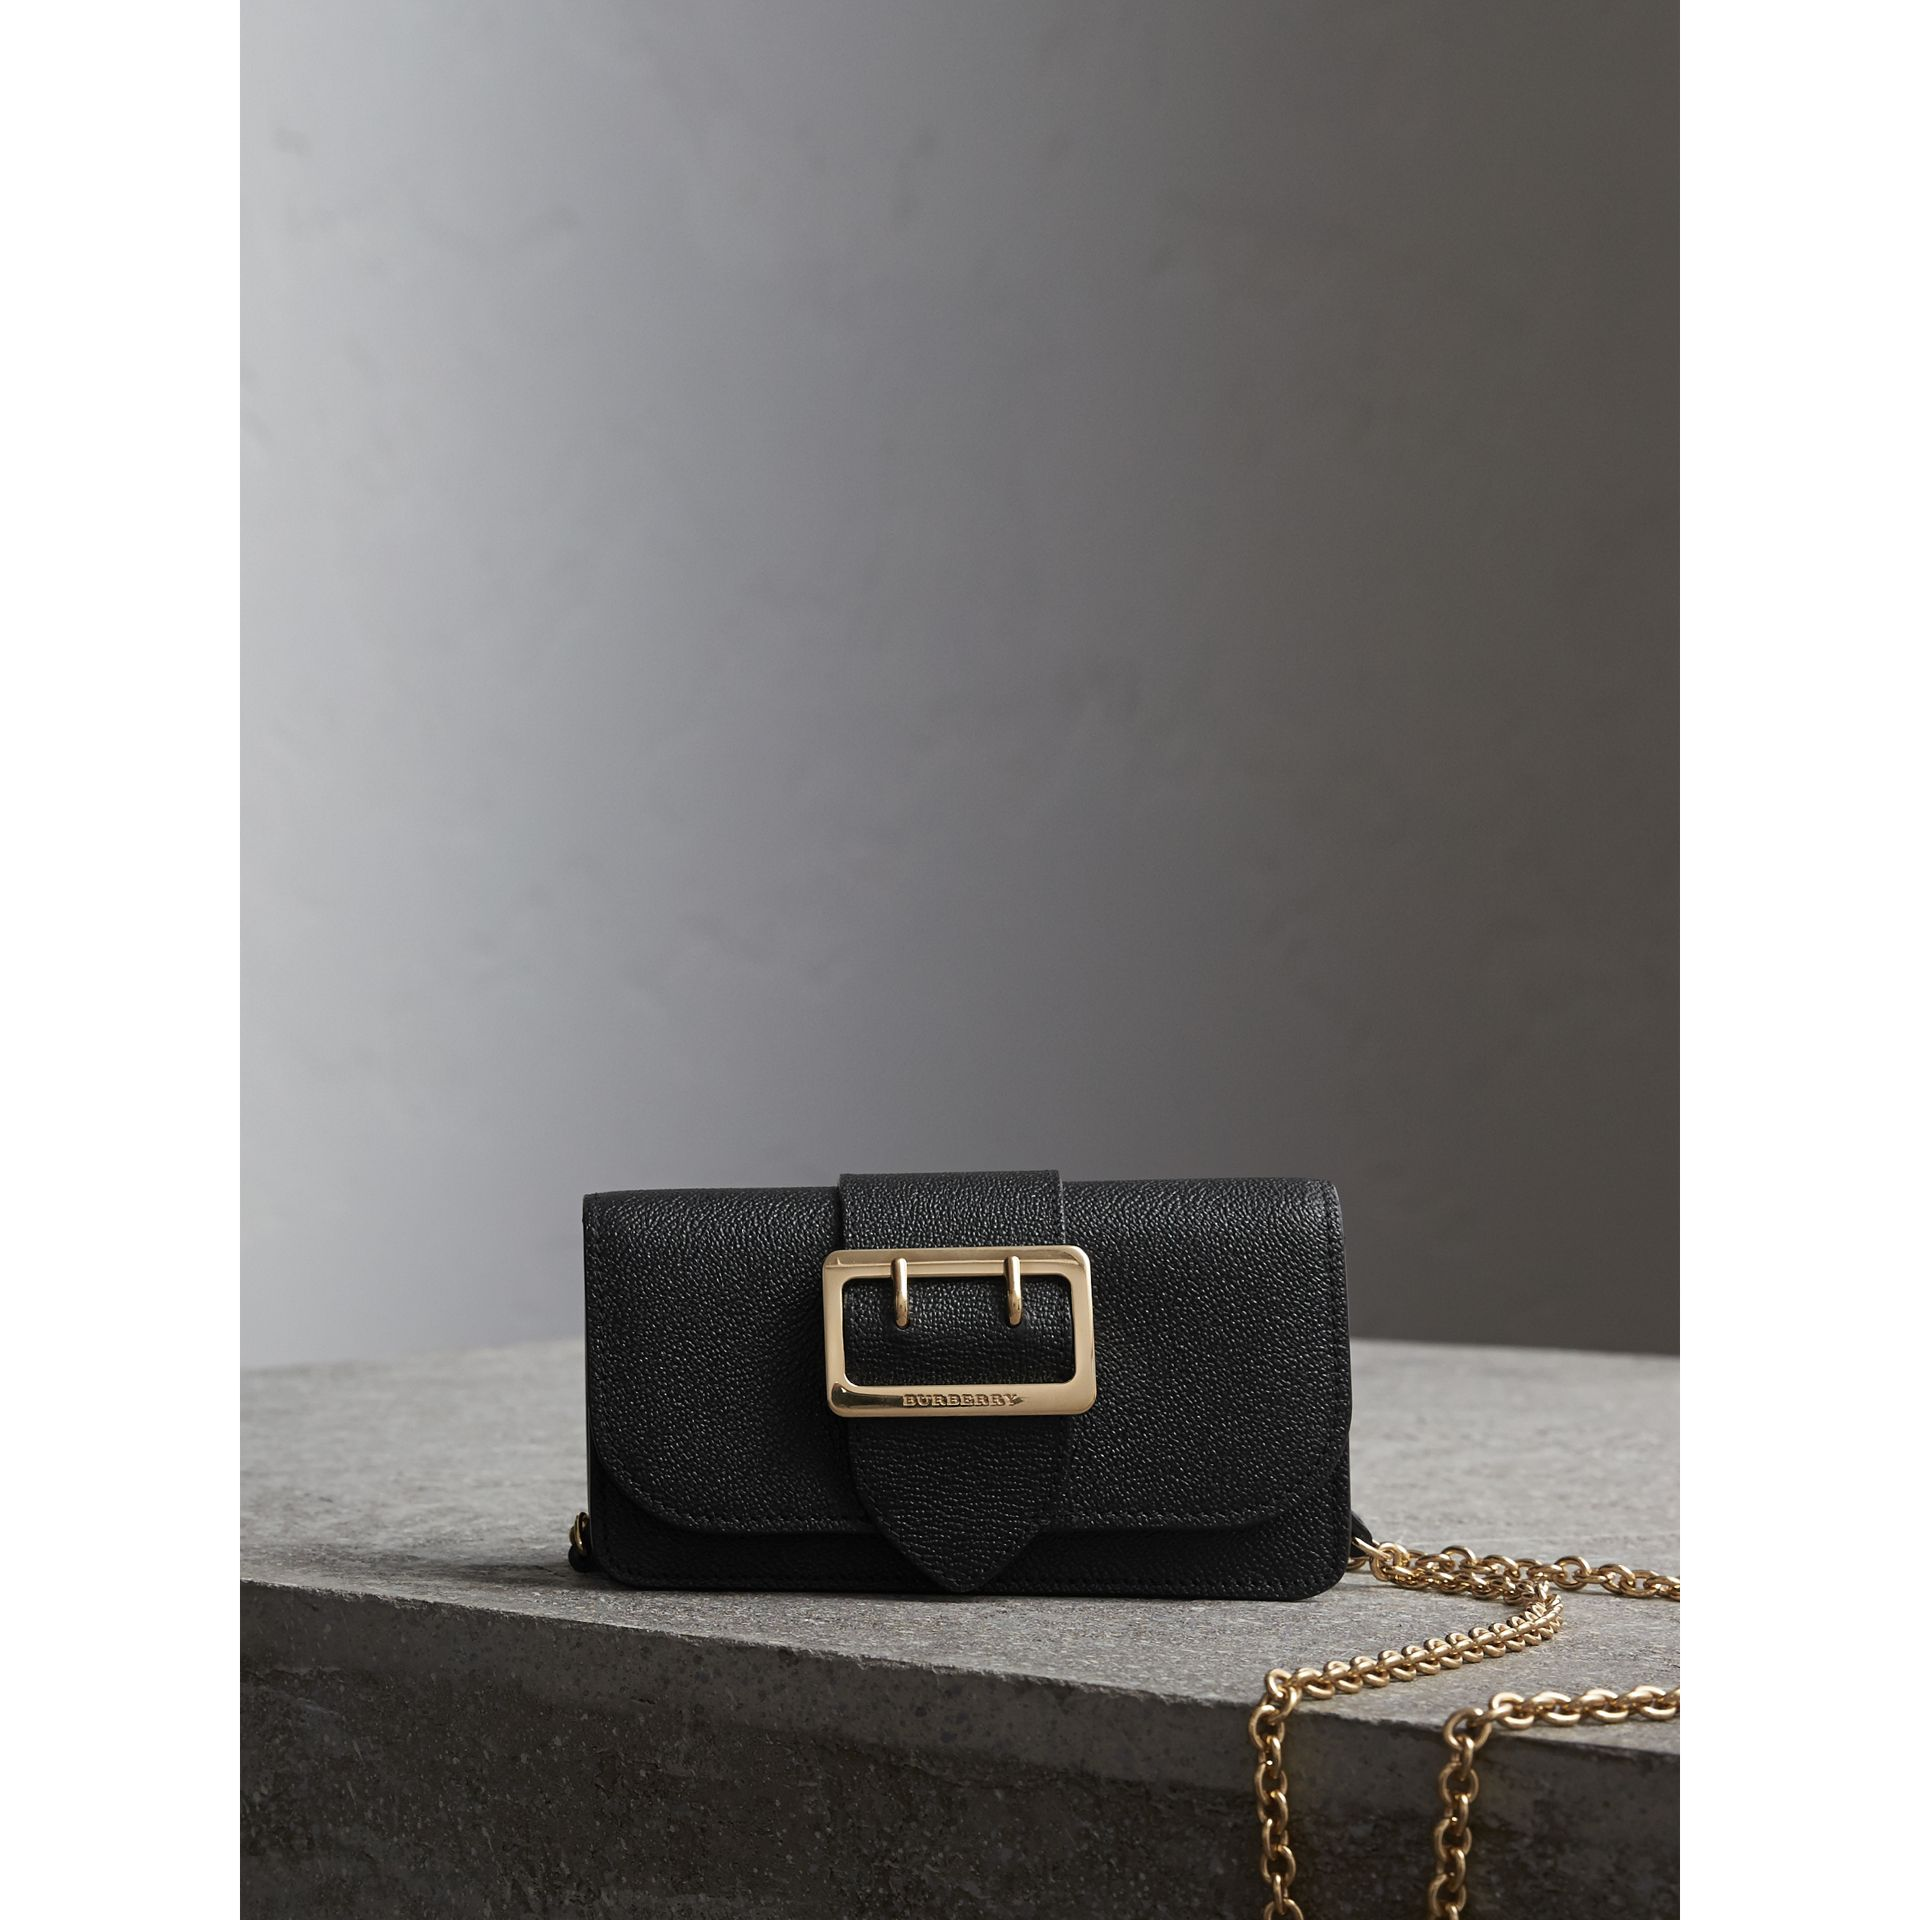 Mini sac The Buckle en cuir grainé (Noir) - Femme | Burberry - photo de la galerie 1